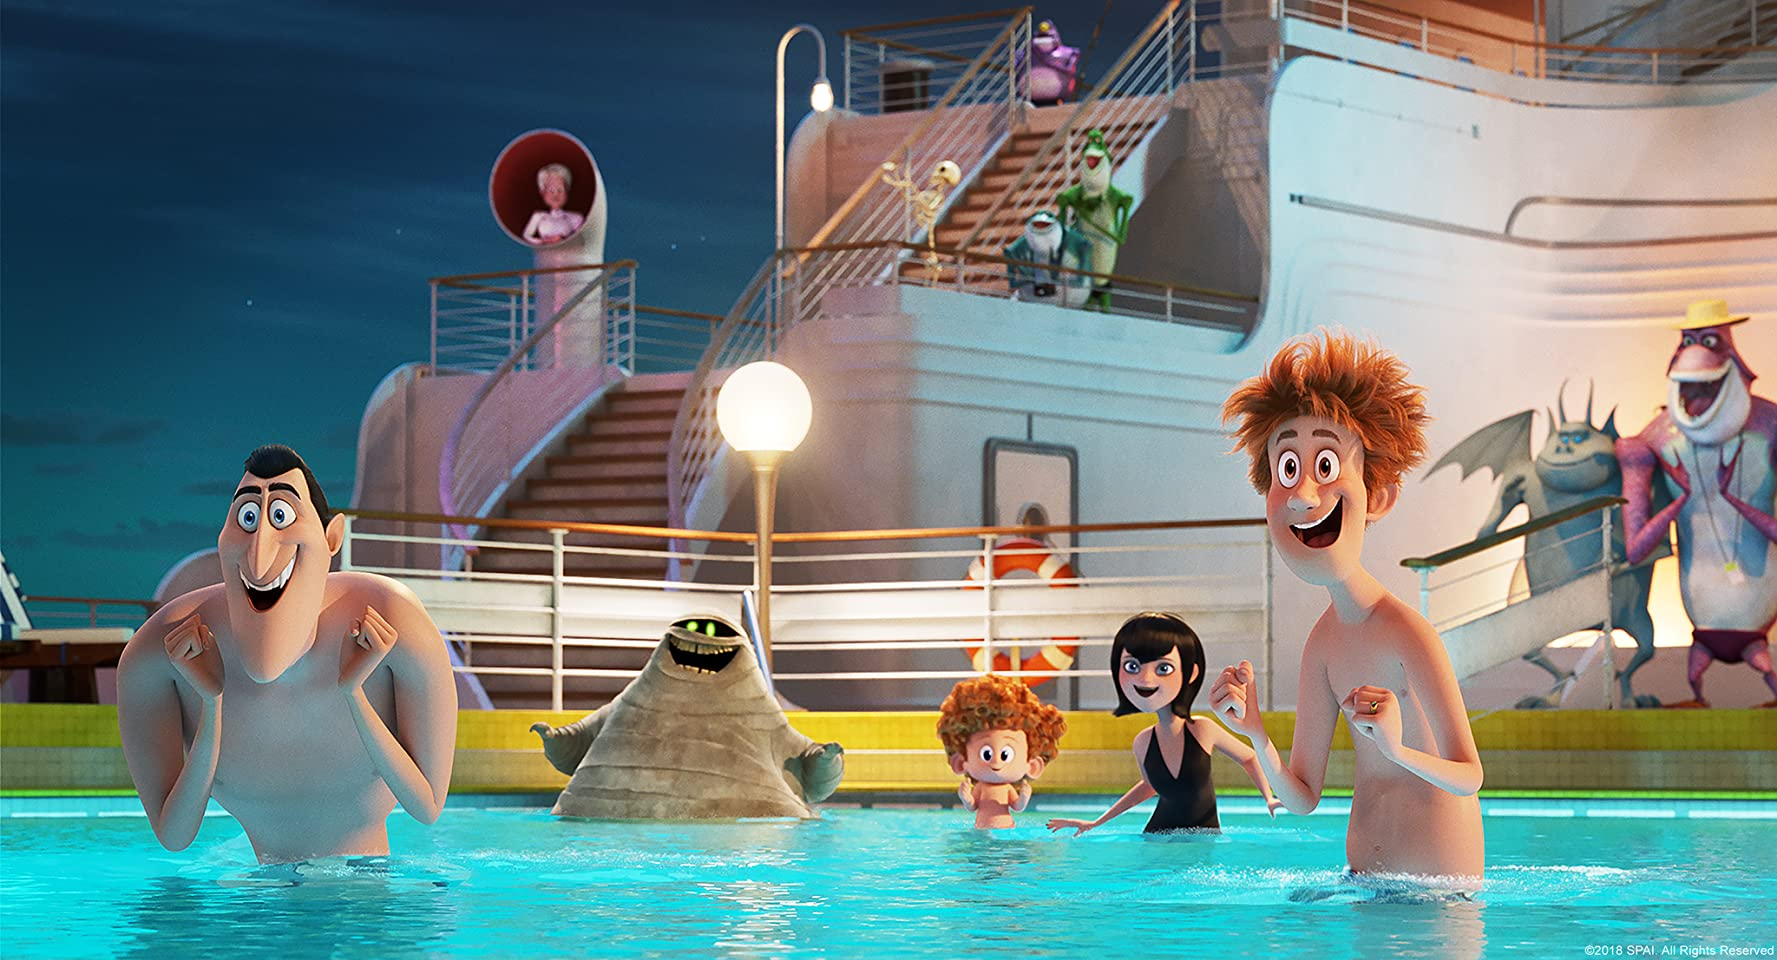 Adam Sandler, Kathryn Hahn, Keegan-Michael Key, Selena Gomez, Andy Samberg, and Asher Blinkoff in Hotel Transylvania 3: Summer Vacation (2018)